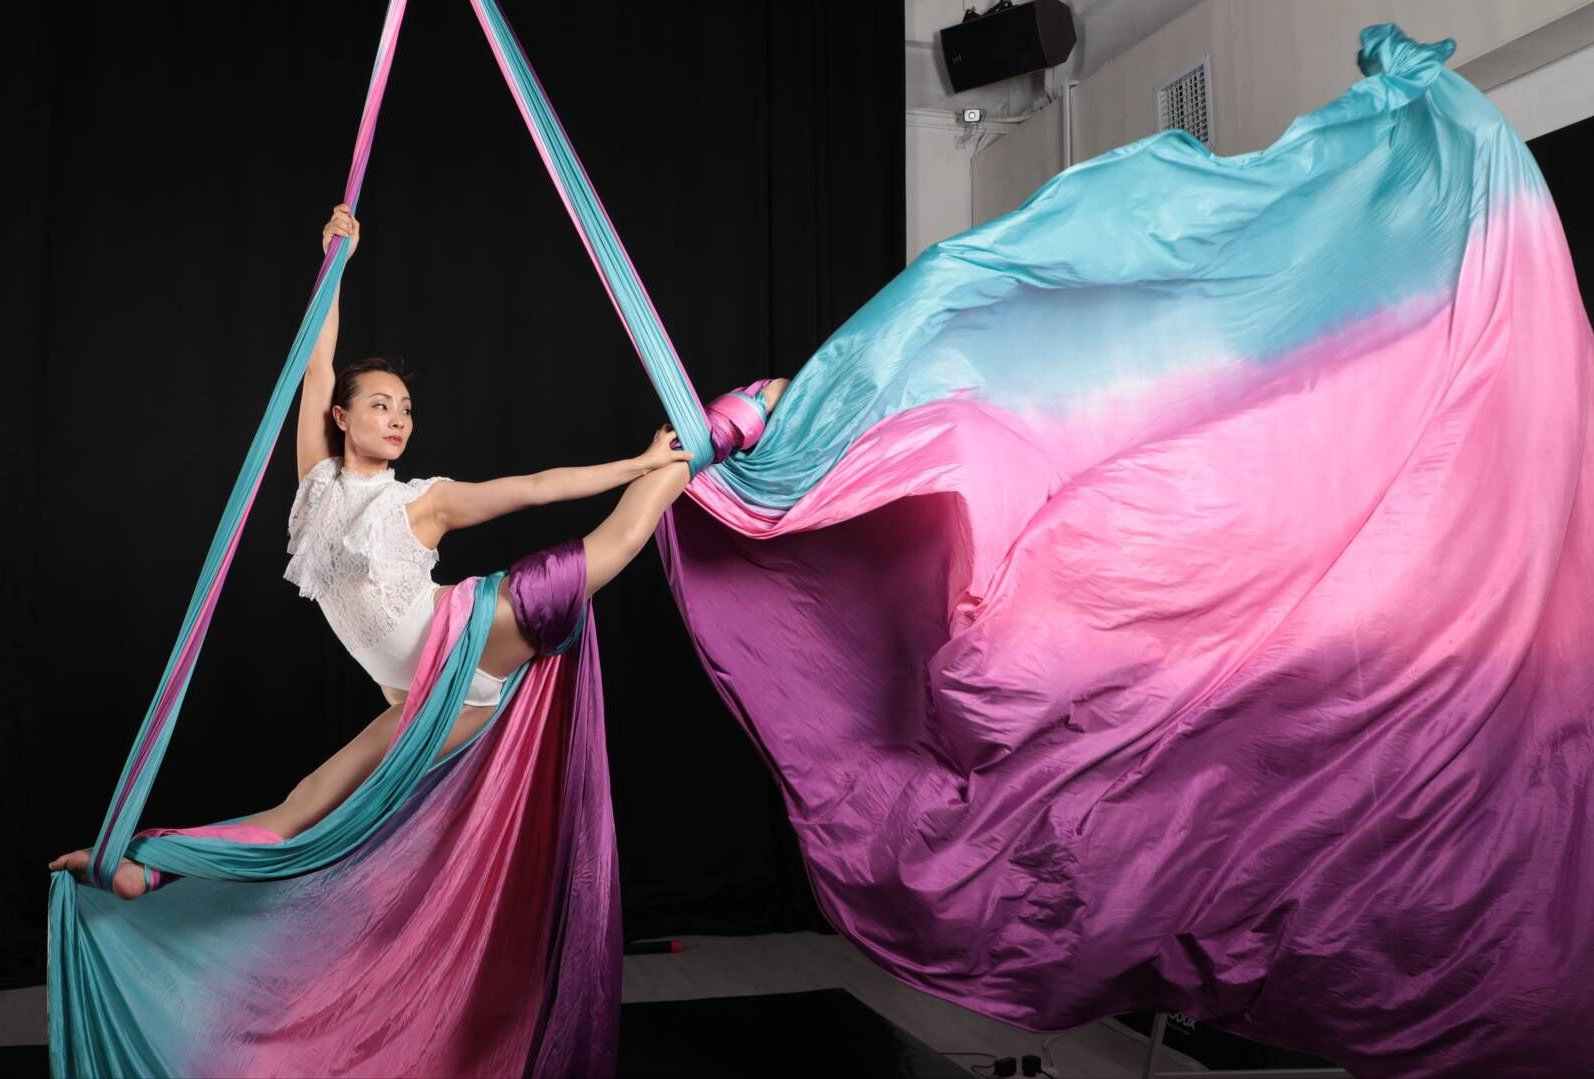 Ombre Aerial Silks Hand Dyed Aerial Fabrics for Aerial Yoga, Aerial Yoga Hammock, Aerial Acrobatic,Circus Arts, Aerial Dance (Electric Forest, Swivel Ring-13yard) … by F.Life (Image #3)